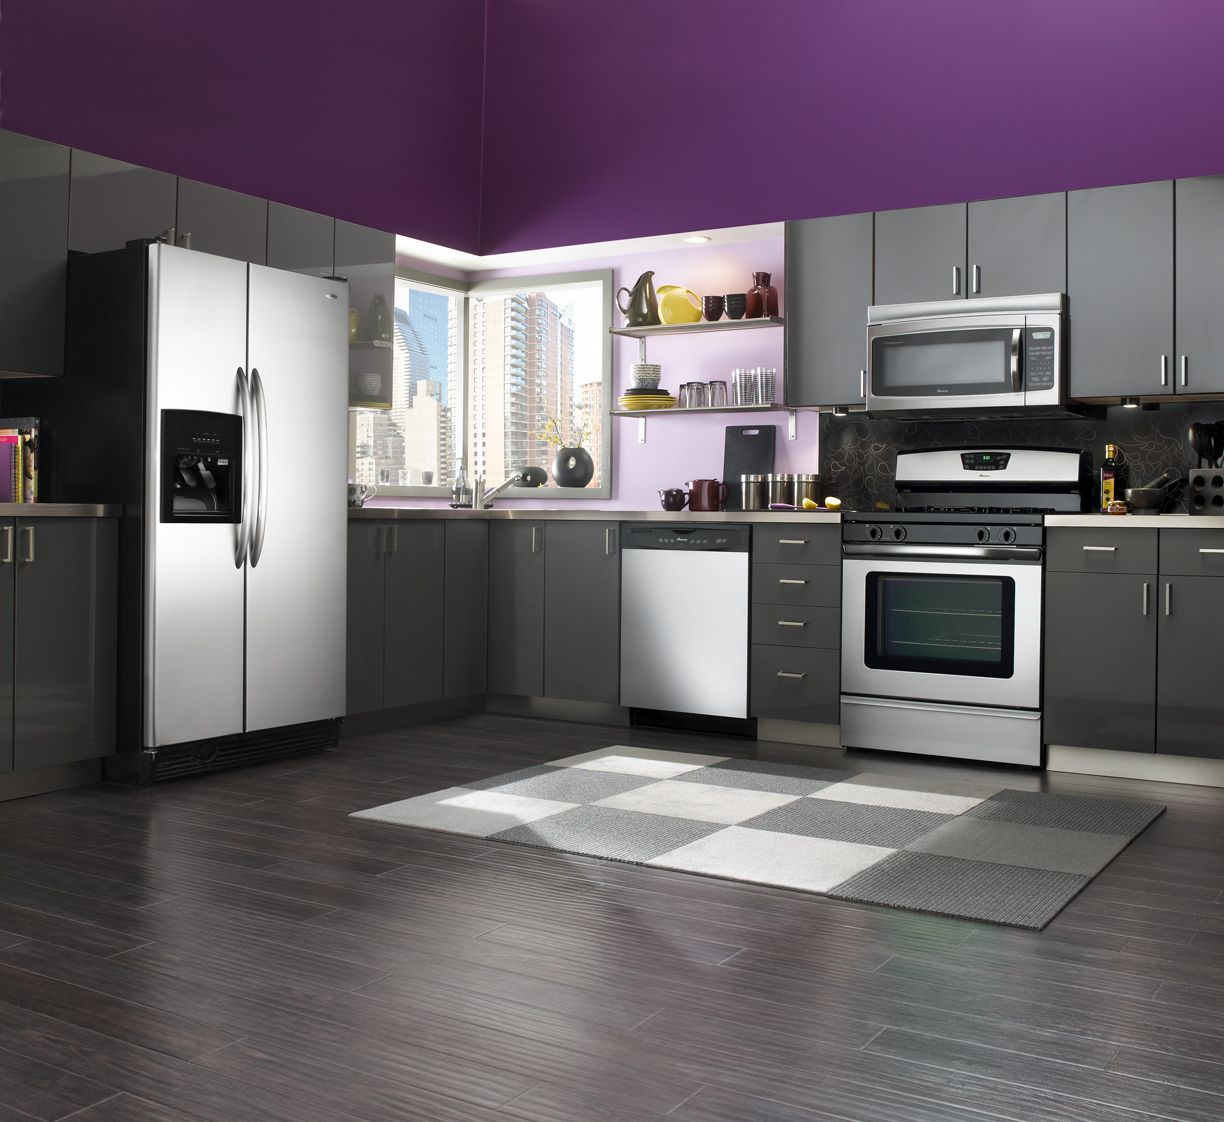 beautiful kitchen designs in purple color enticing. Black Bedroom Furniture Sets. Home Design Ideas